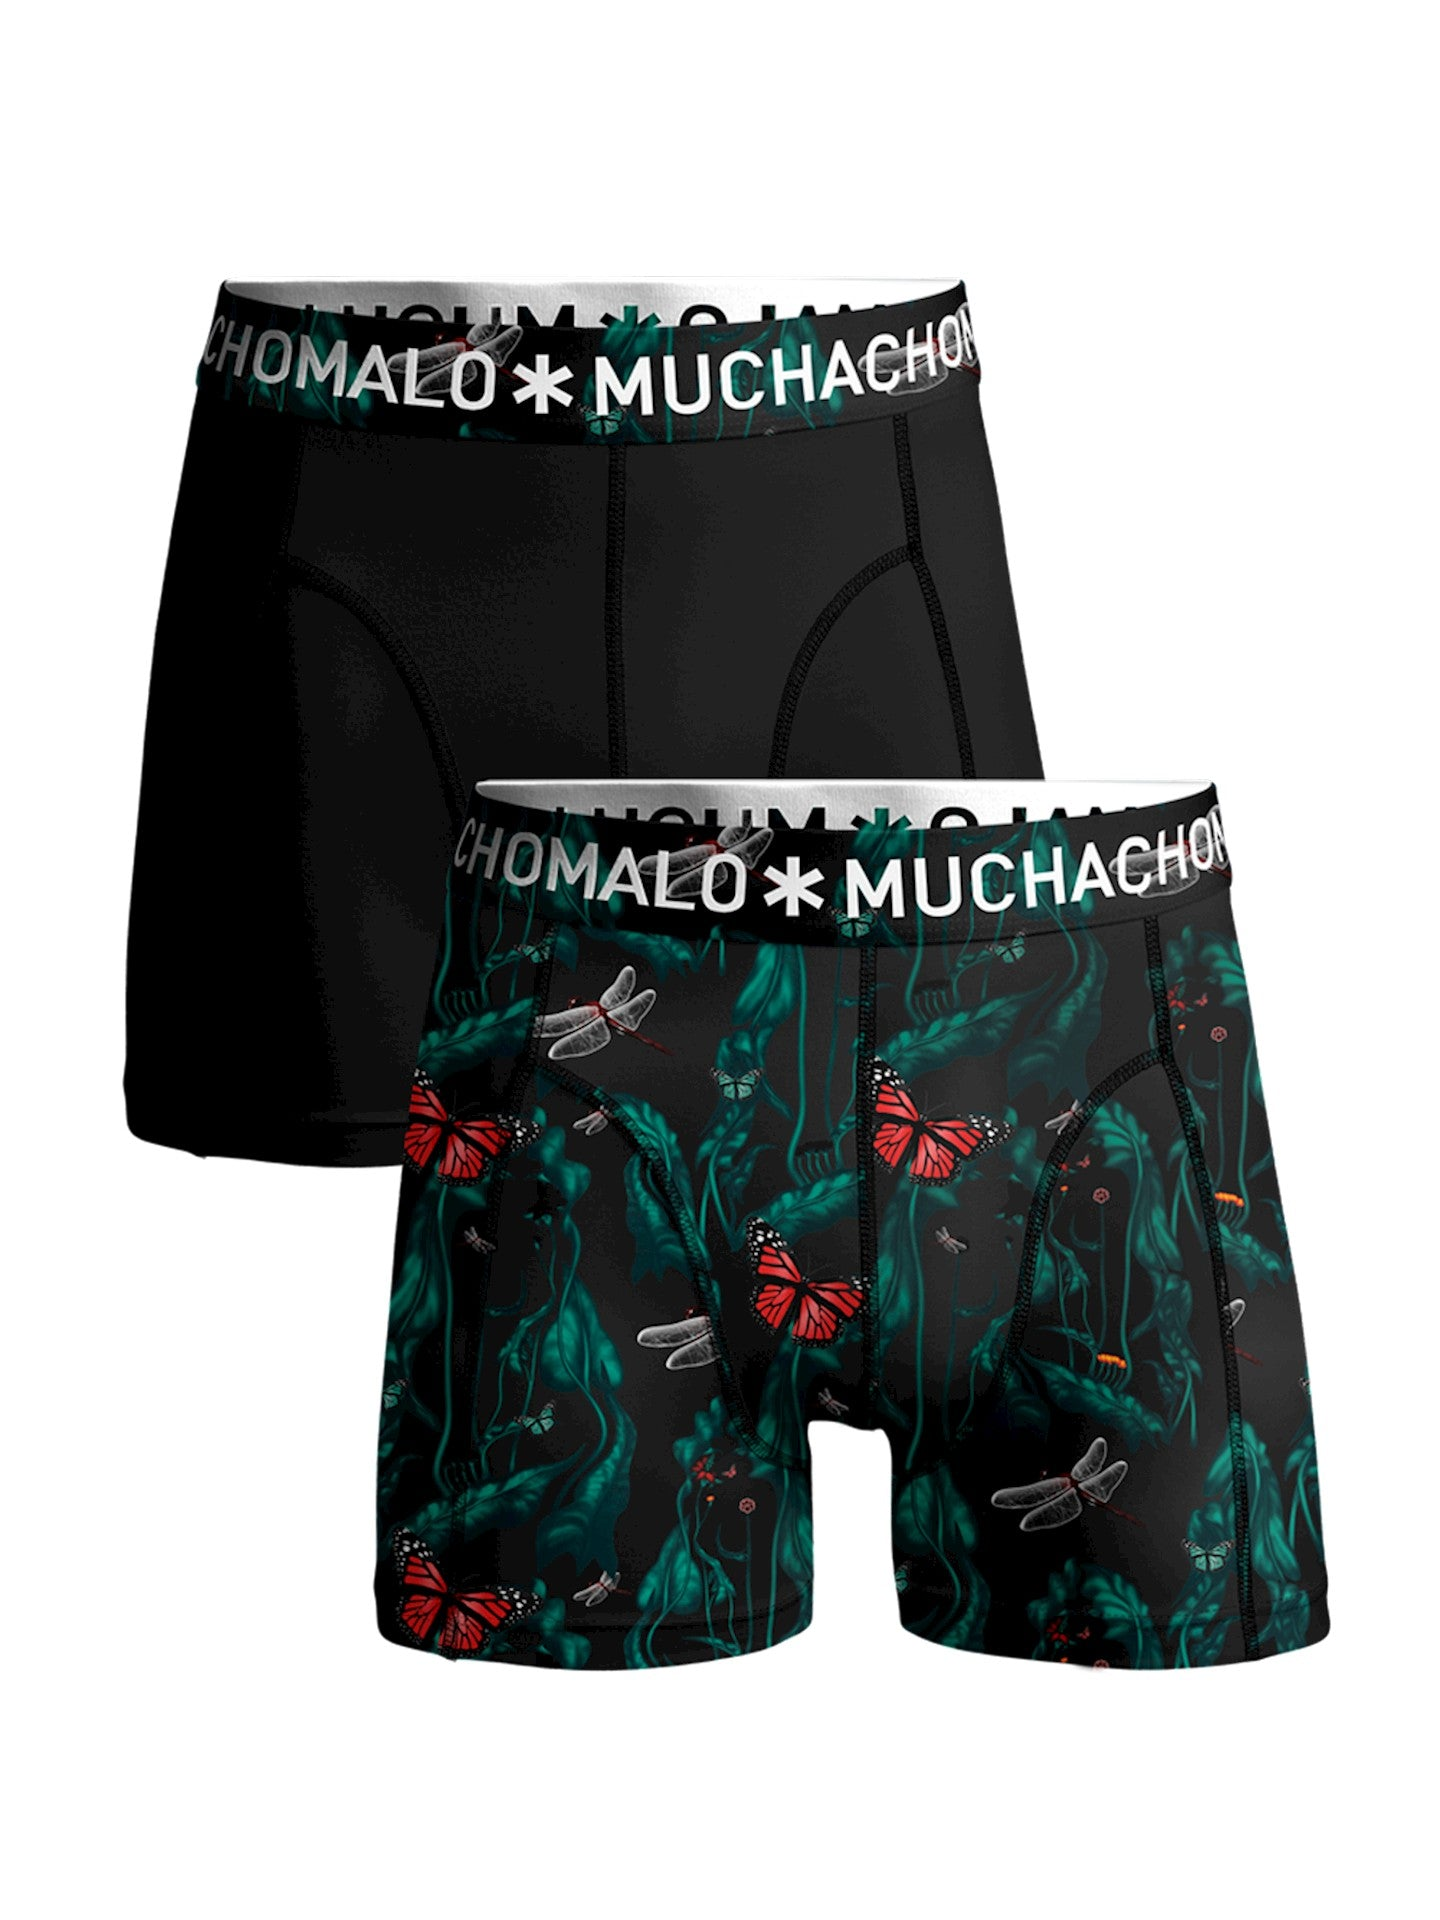 Men 2-Pack Shorts Women WOPTI1010 - Jambelles Muchachomalo S / 01 Print/Black